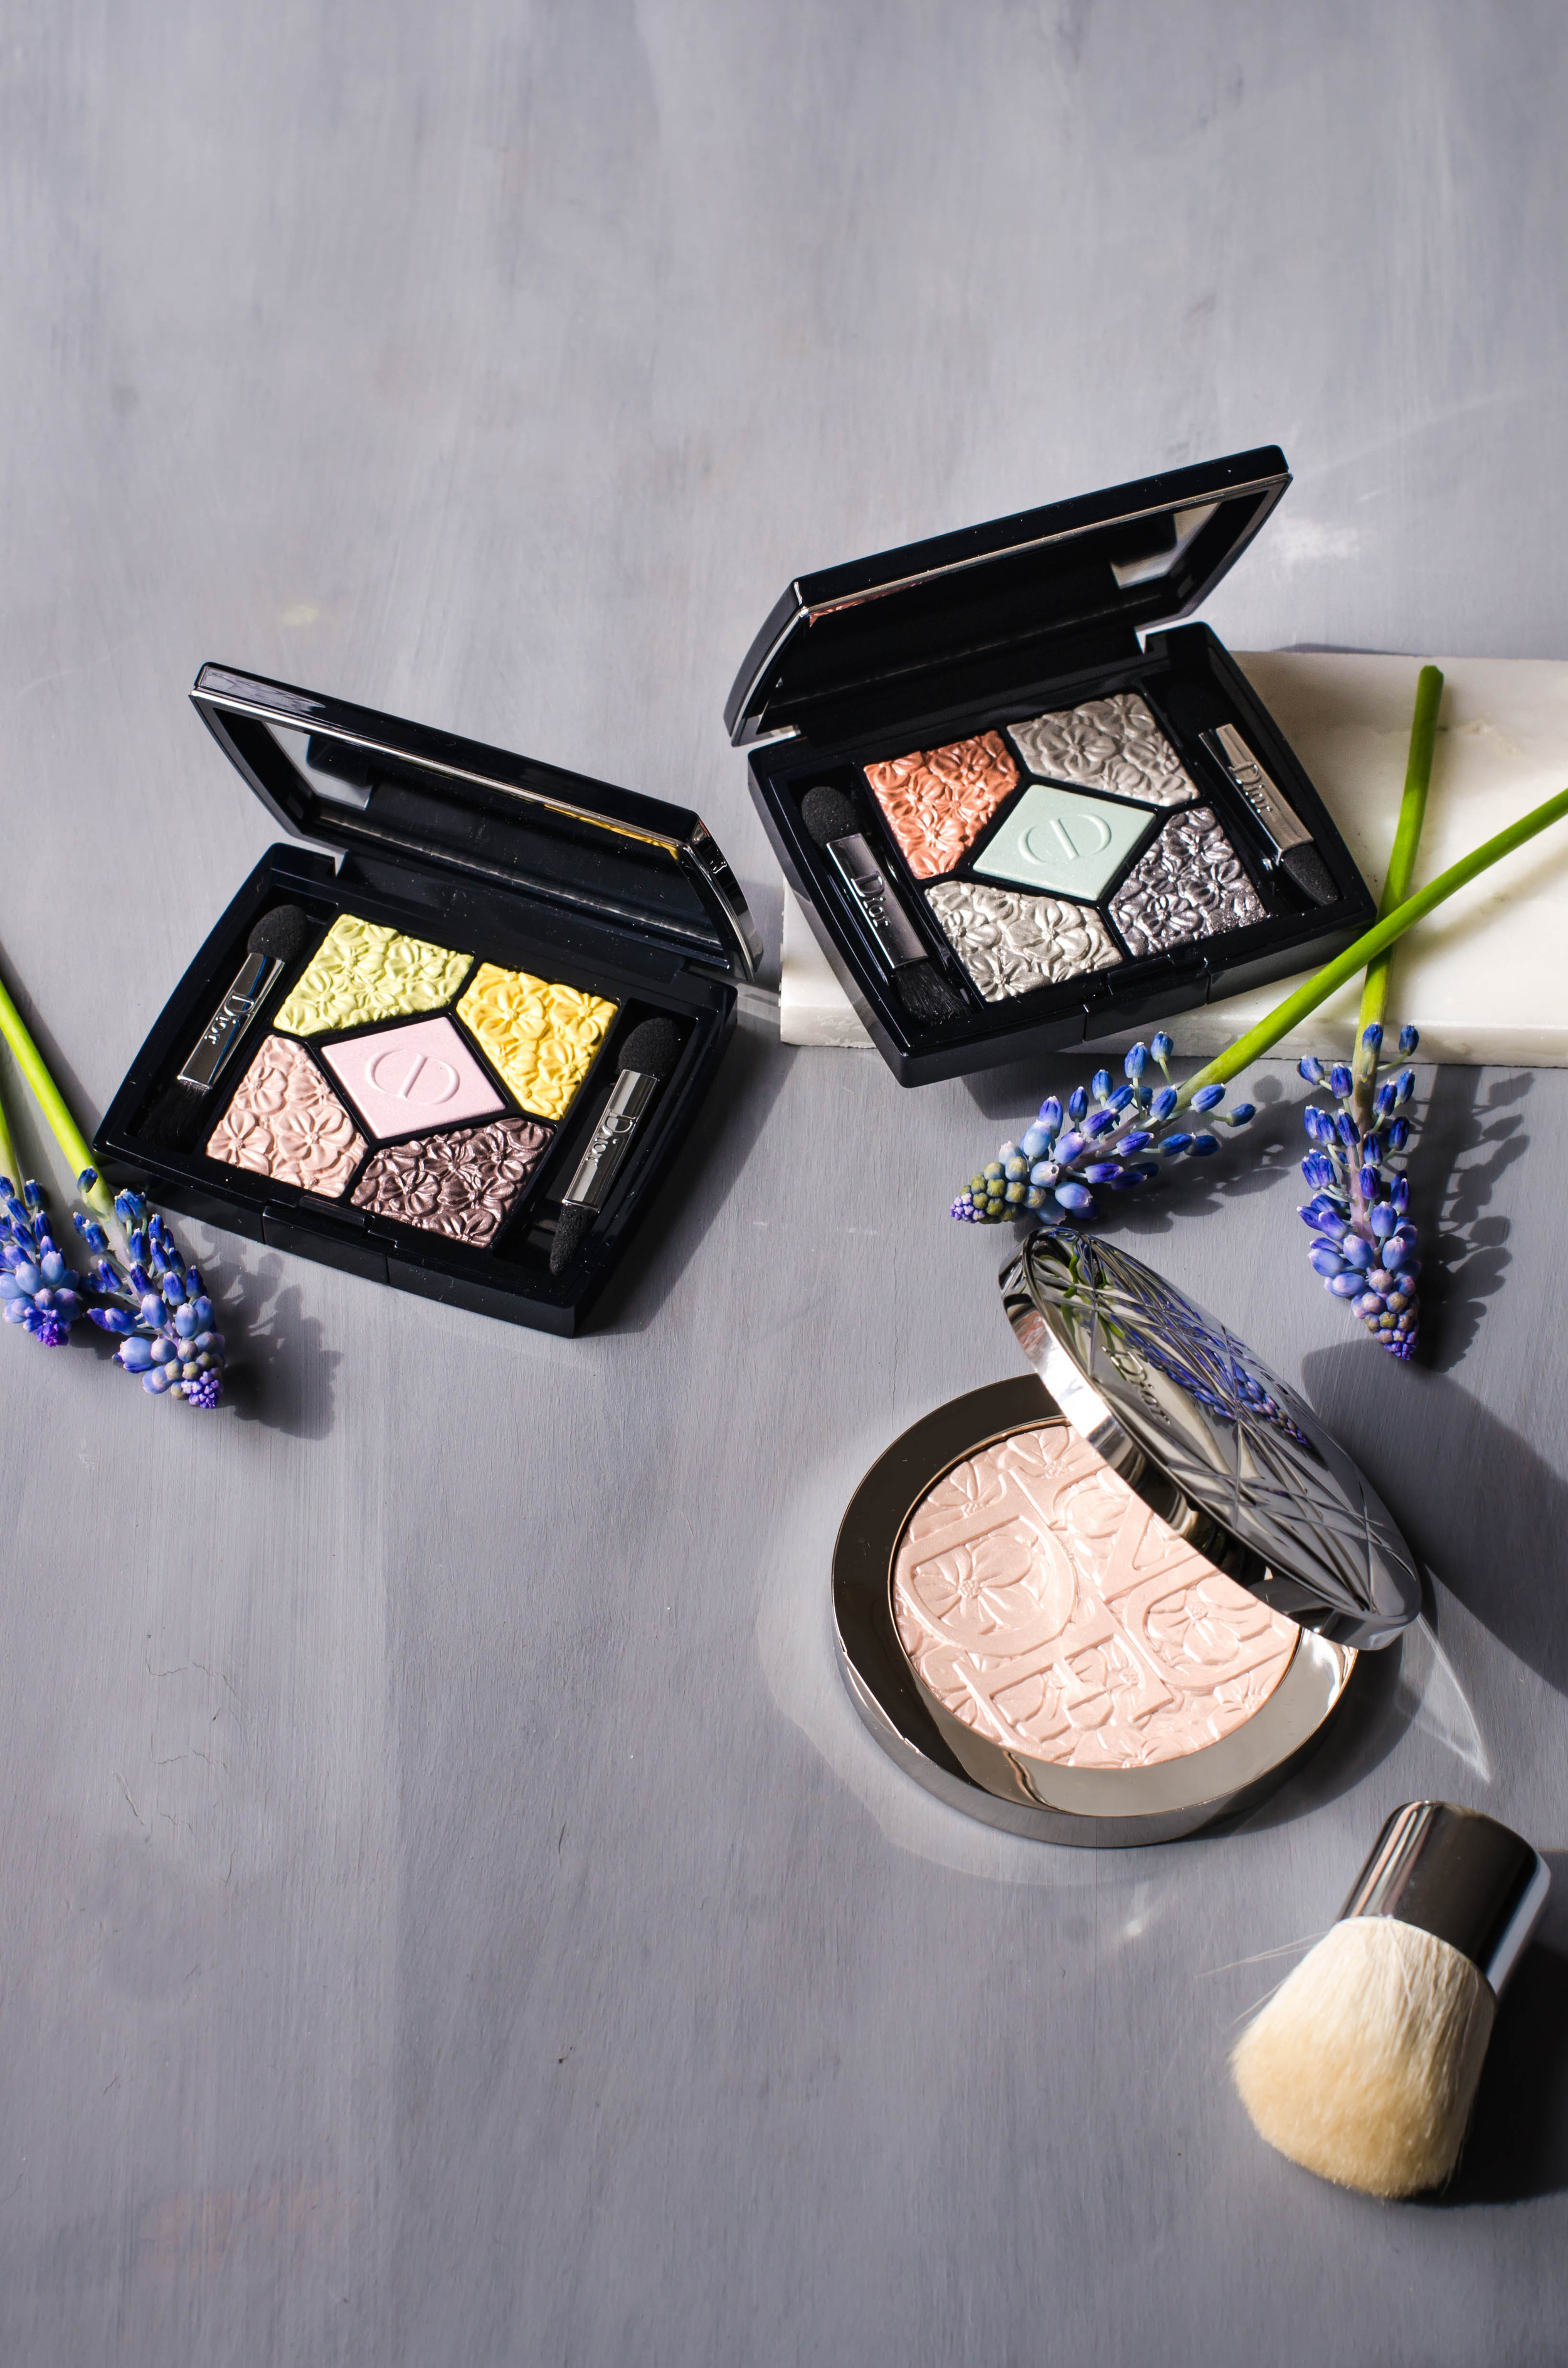 ROSE & IVY Journal Dior Glowing Gardens Collection